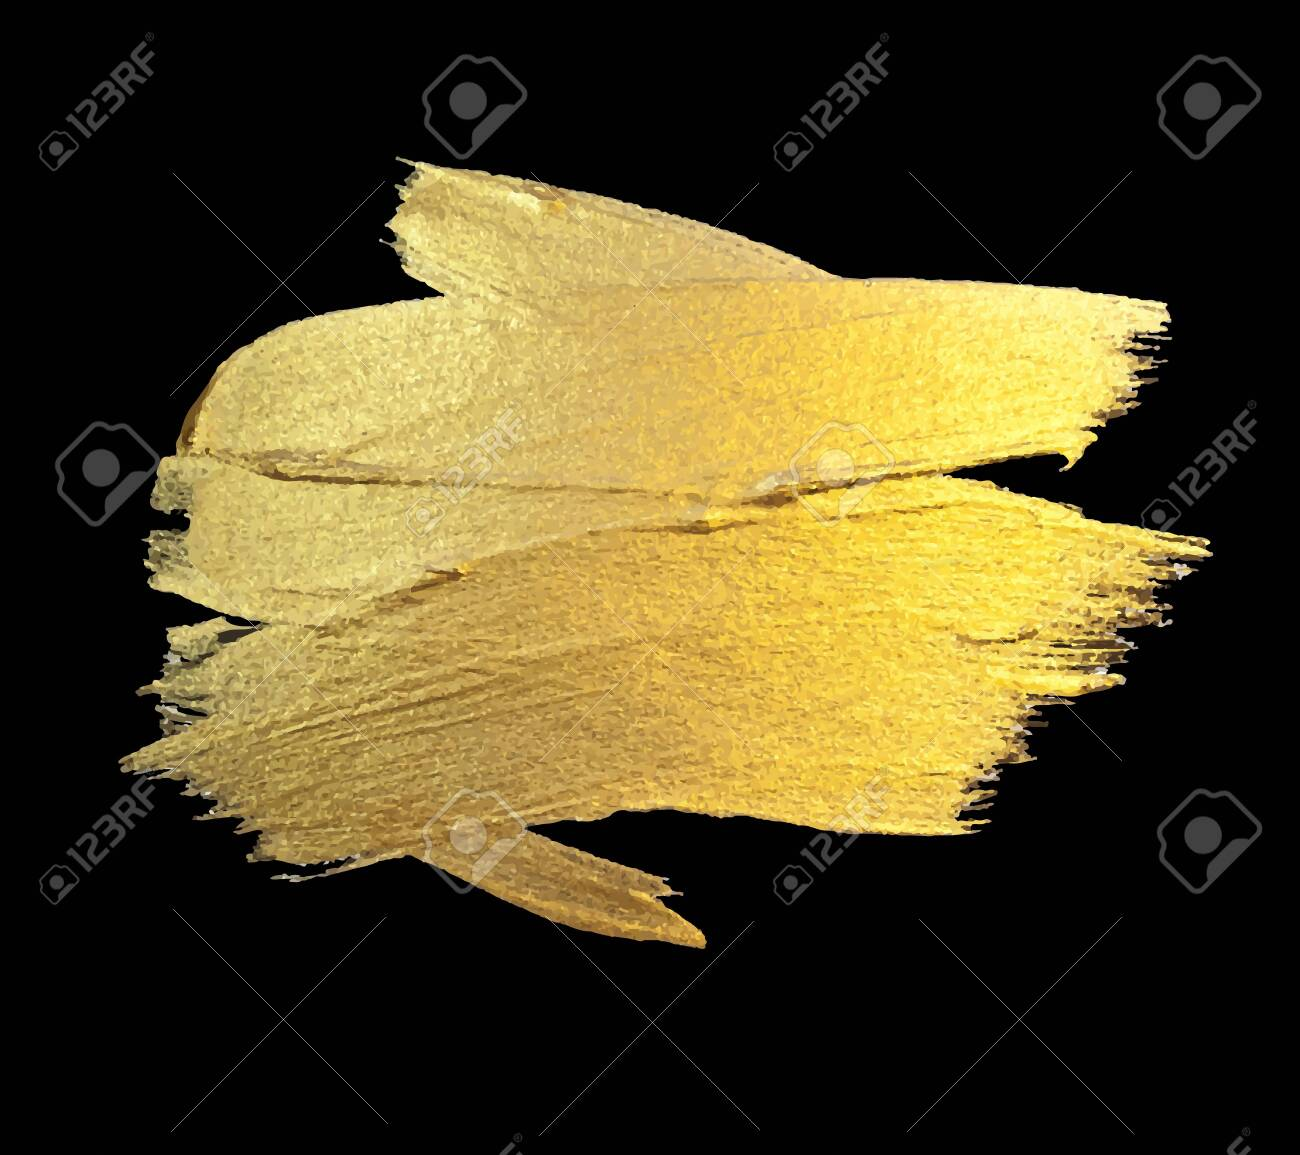 Gold Watercolor Texture Paint Stain Abstract Illustration. Shining Brush Stroke for you Amazing Design Project. Black Background. - 149301135